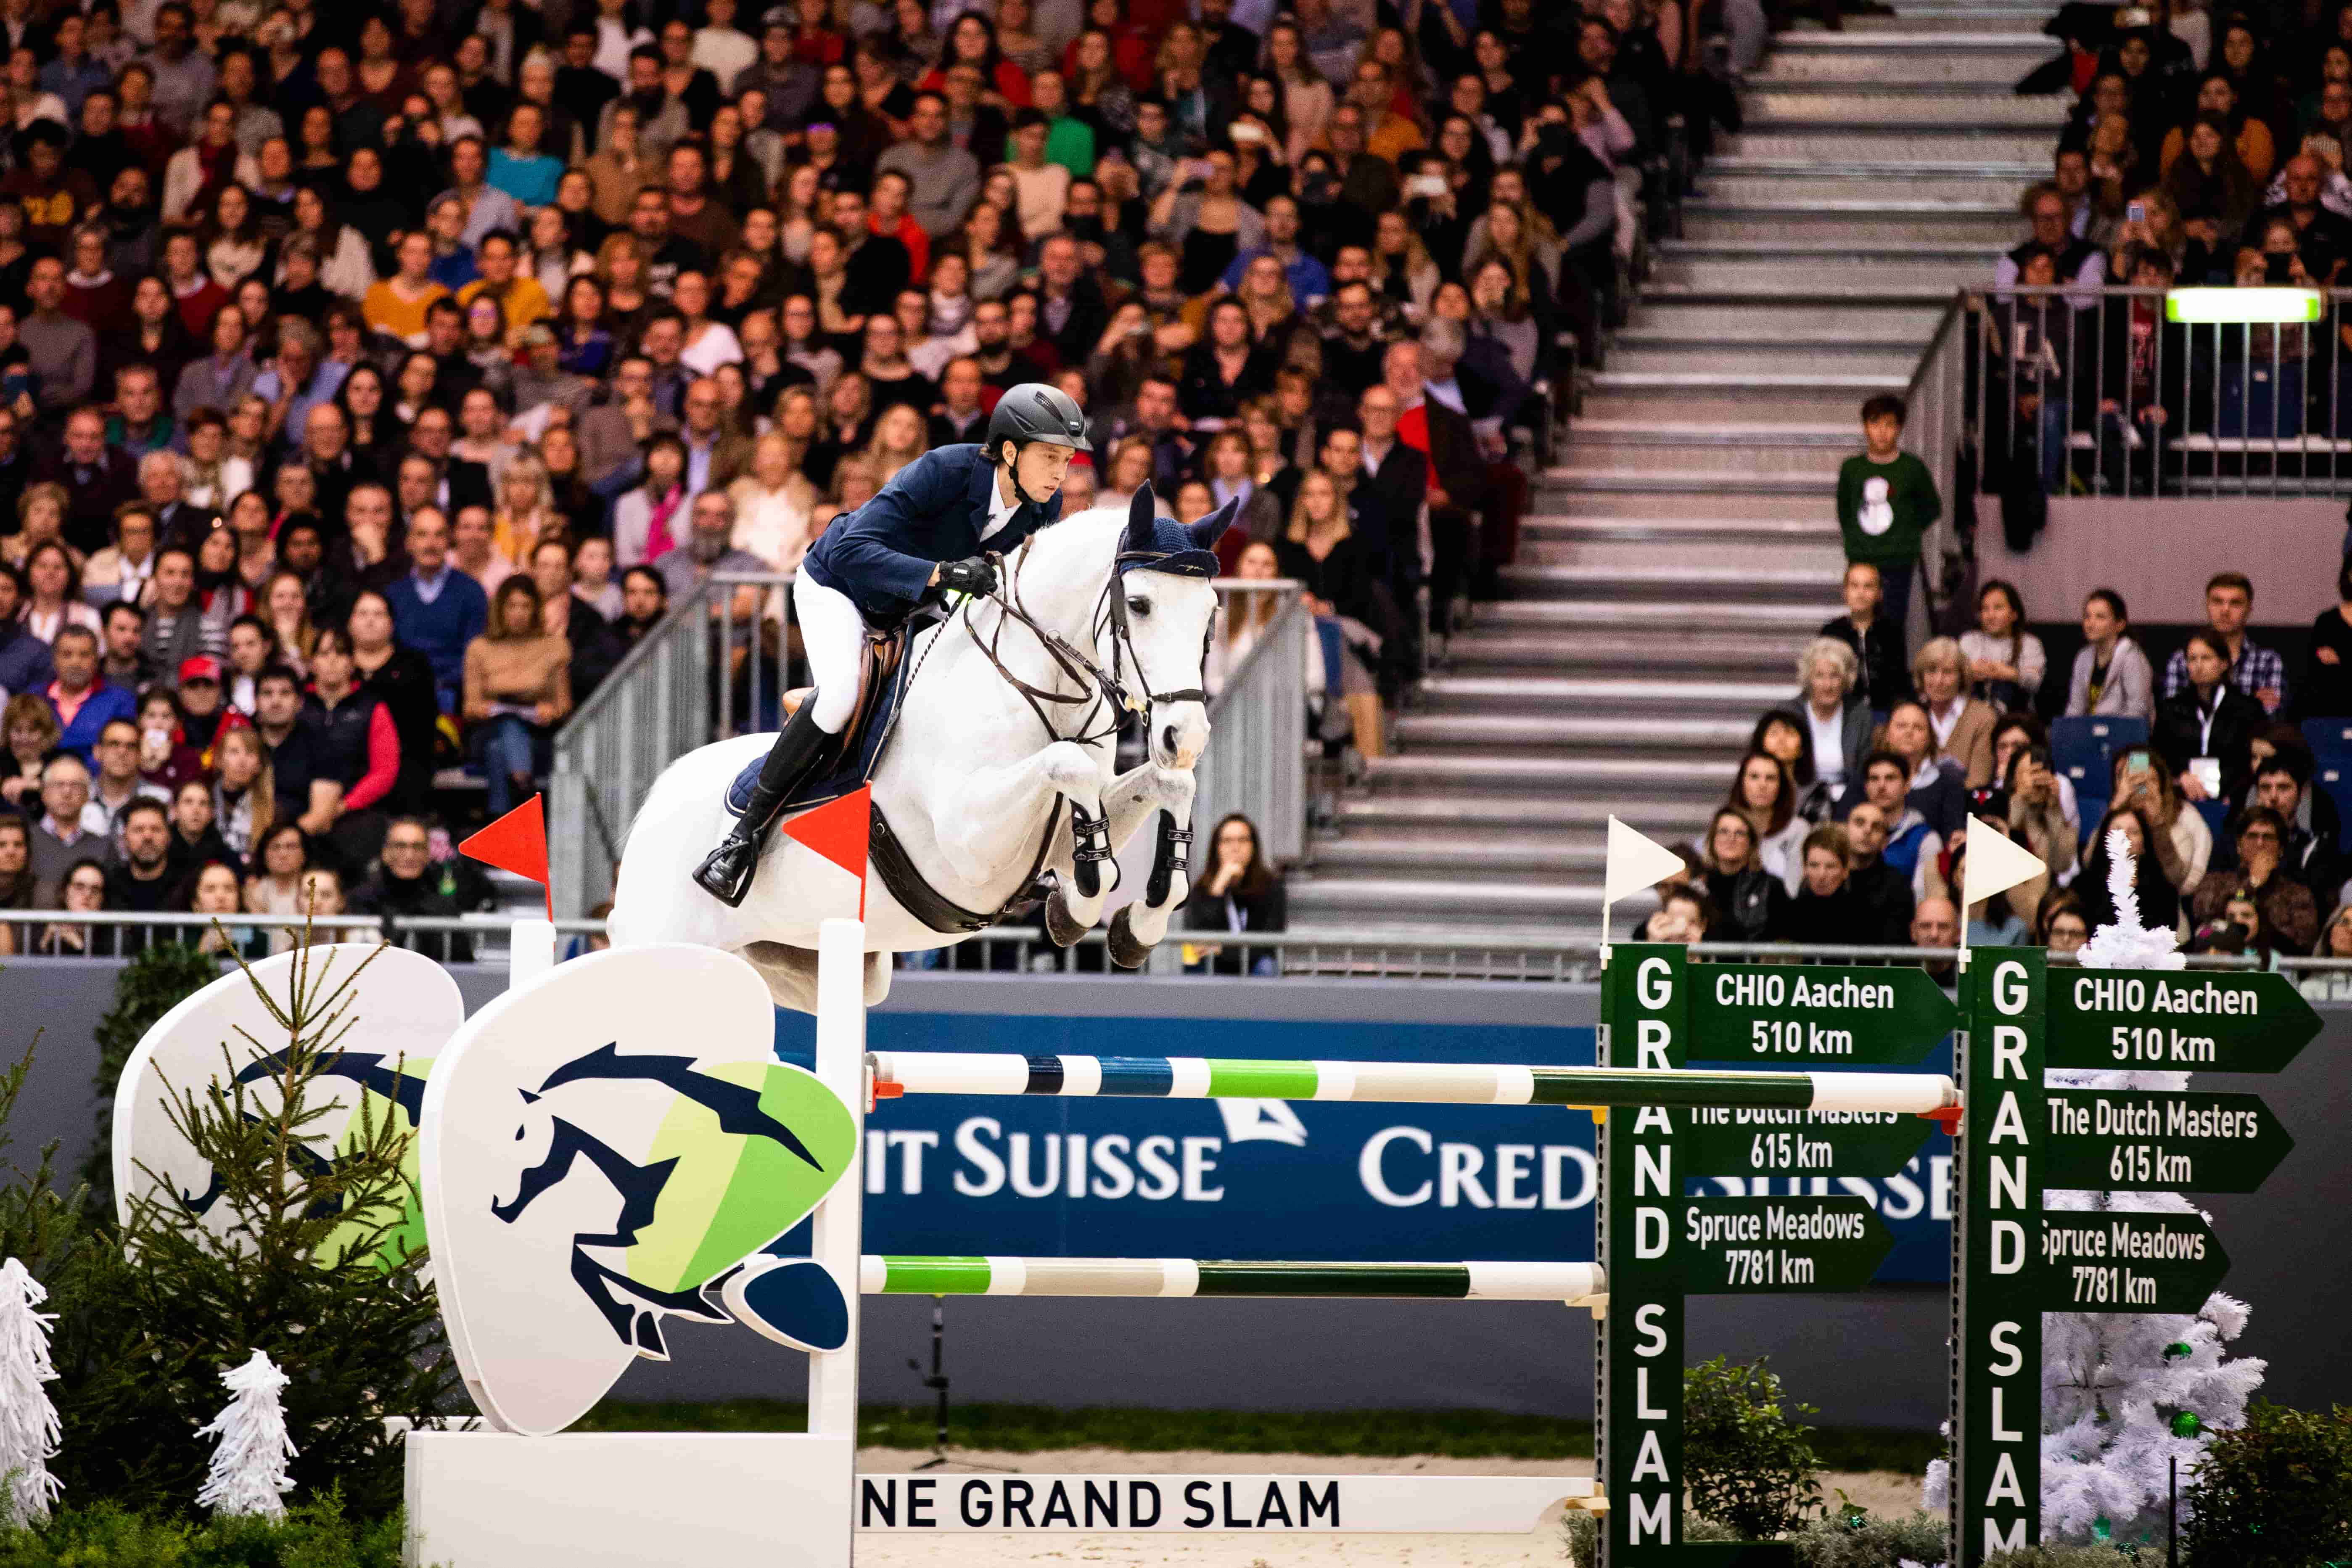 Martin Fuchs keeps Clooney for the Rolex Grand Prix of the Dutch Masters